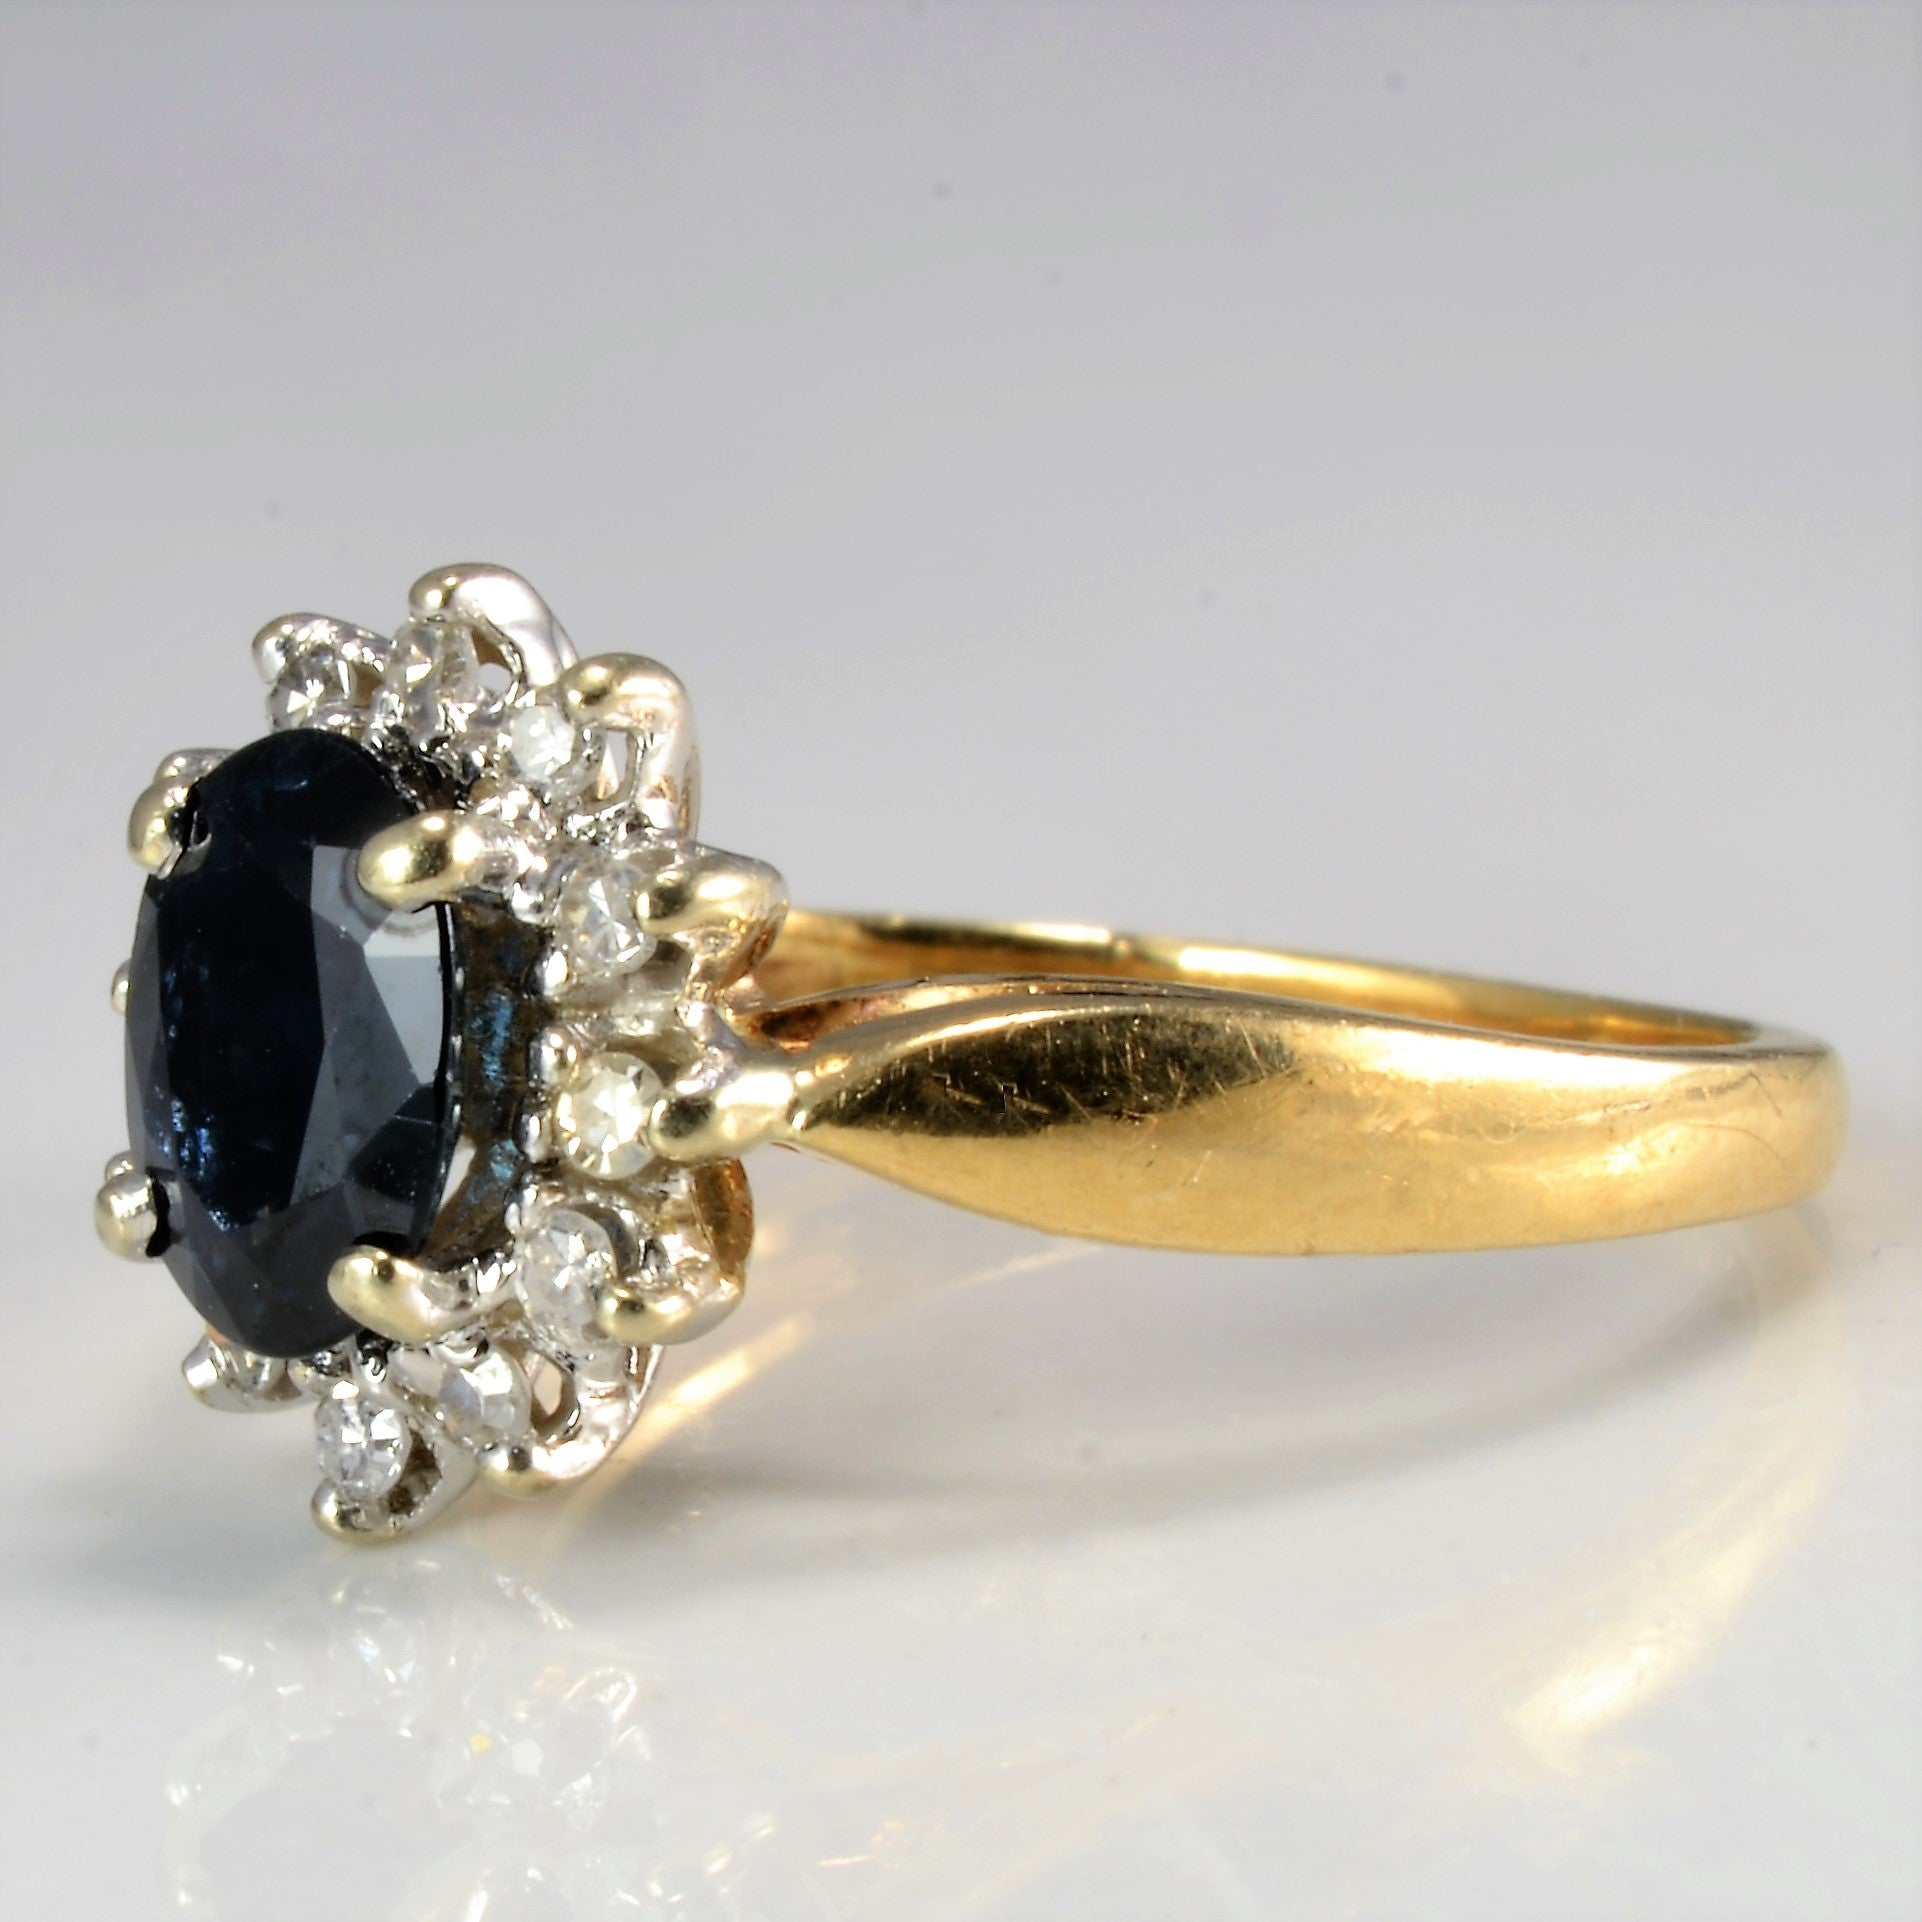 Sapphire & Diamond Ladies Cocktail Ring | 0.13 ctw, SZ 4.5 |